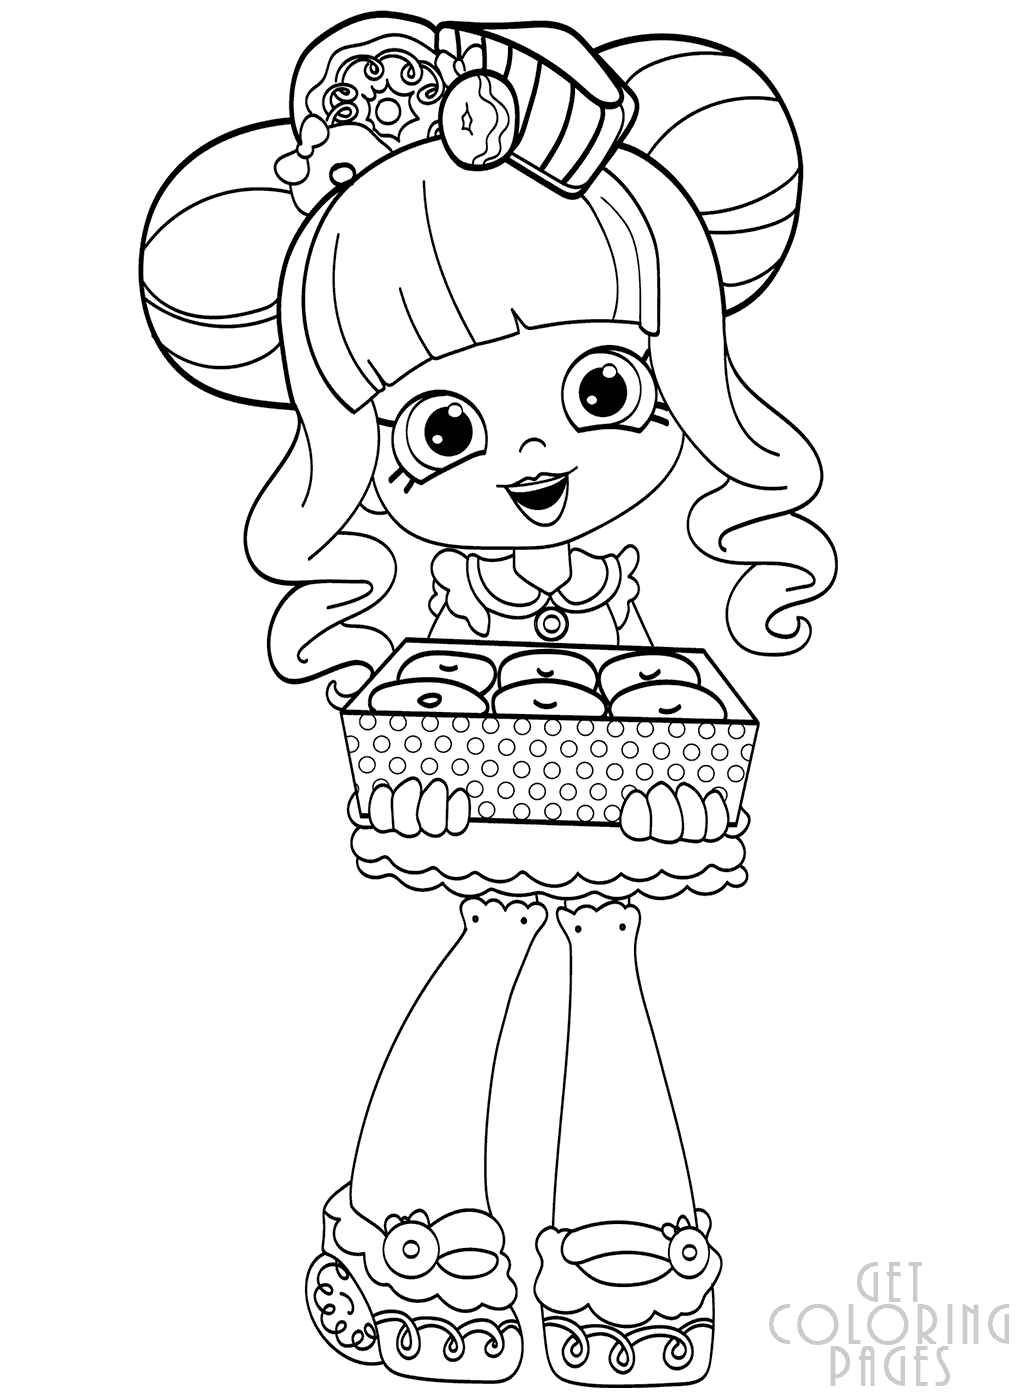 donatina shopkin coloring pages shopkins coloring for kids coloring sheets hairbows